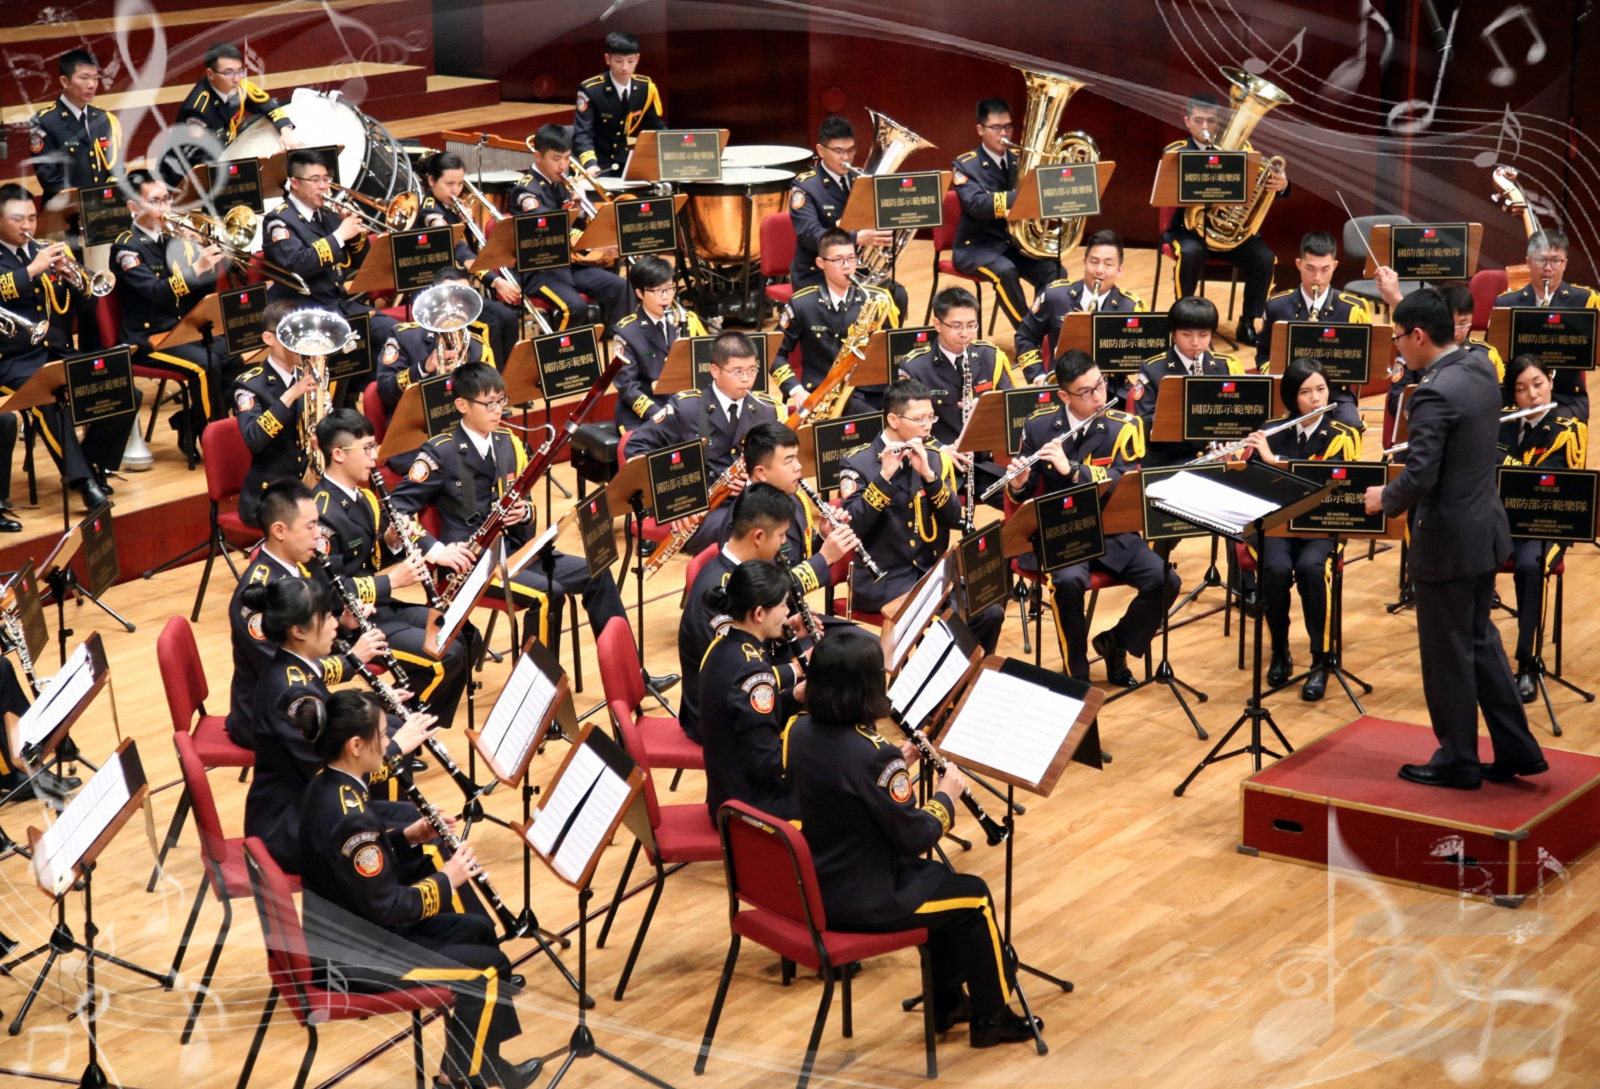 2017 Tour of MND Military Band